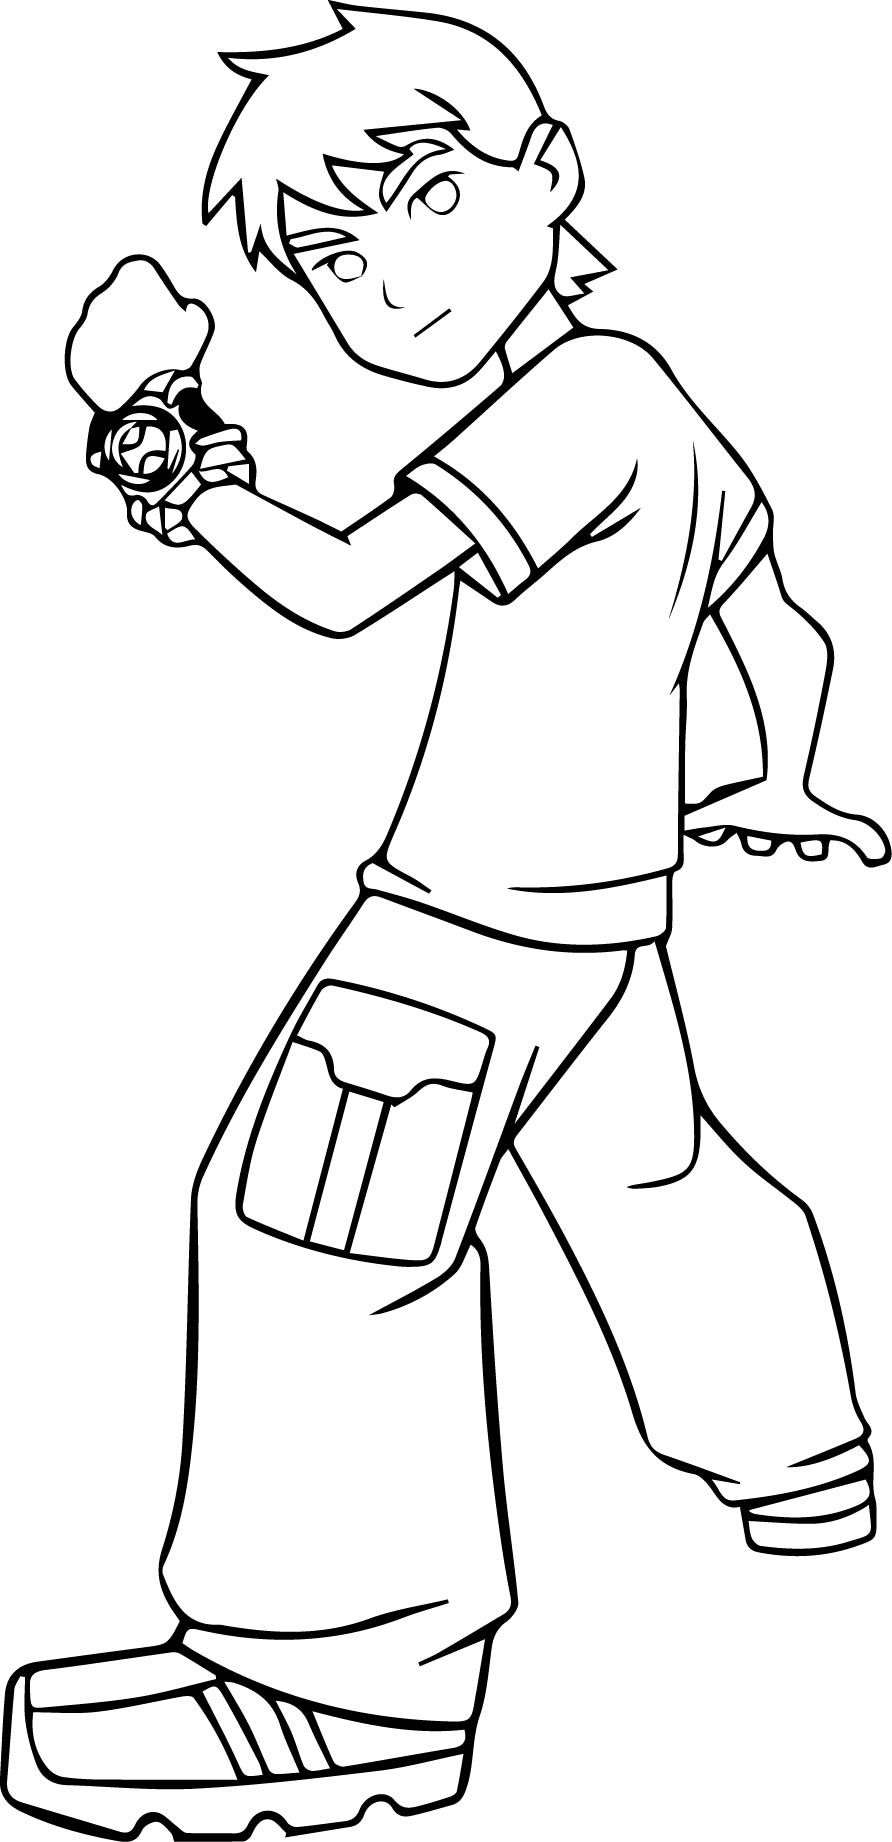 nice Free Ben 10 Coloring Pages Print (1) | Mcoloring | Pinterest